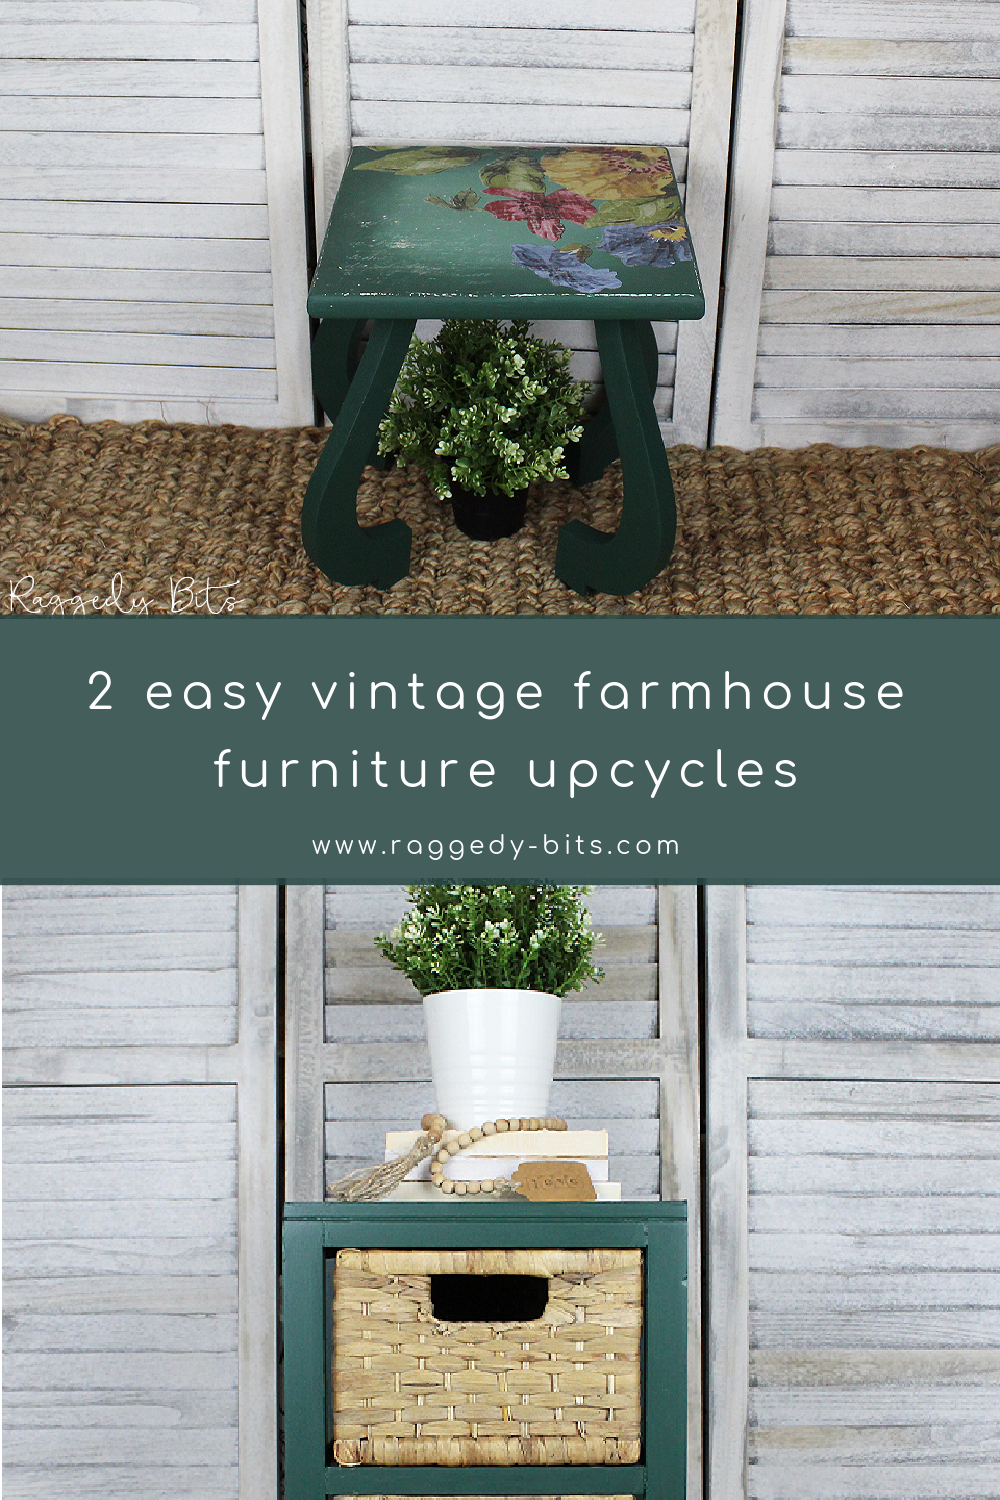 Sharing to easy vintage farmhouse furniture upcycles using Fusion Mineral Paint - Pressed Fern and IOD Stamp Kindest Regard and Decor Transfer Wall Flower | www.raggedy-bits.com | #raggedybits #DIY #paintedfurniture #fusionmineralpaint #pressedfern #IOD #wallflower #kindestreguard #vintage #farmhouse